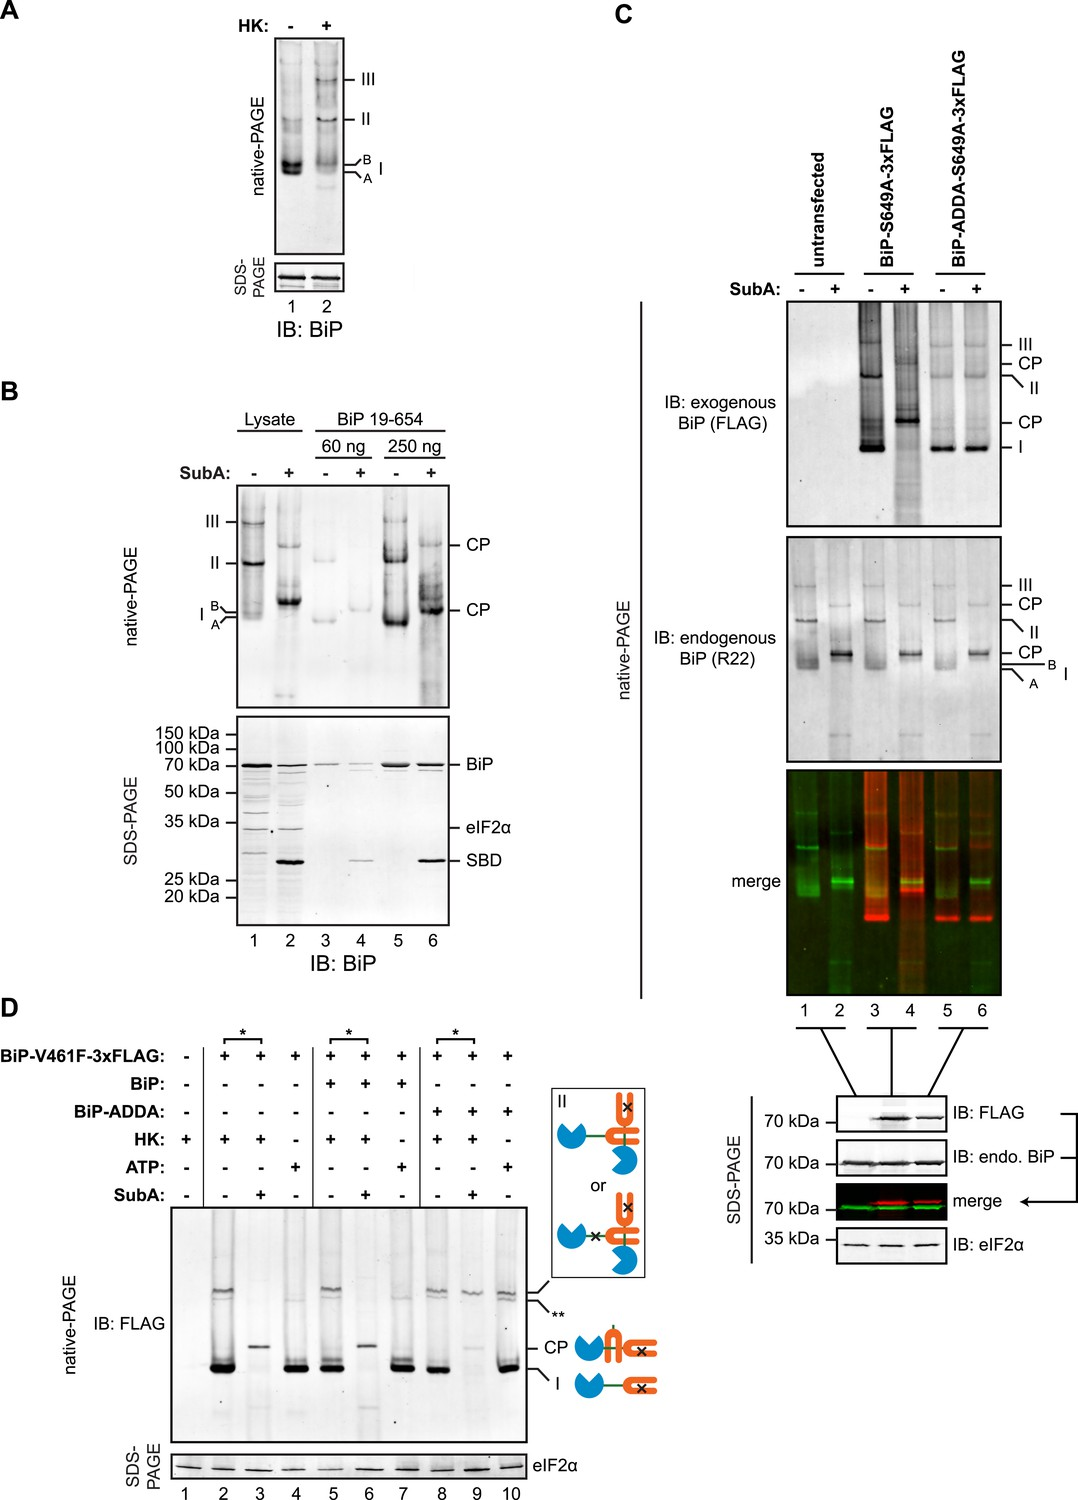 Physiological Modulation Of Bip Activity By Trans Protomer Cde Ham Iii Wiring Diagram Engagement The Linker Substrate Binding Domain Sbd As Basis For Oligomerization In Vivo